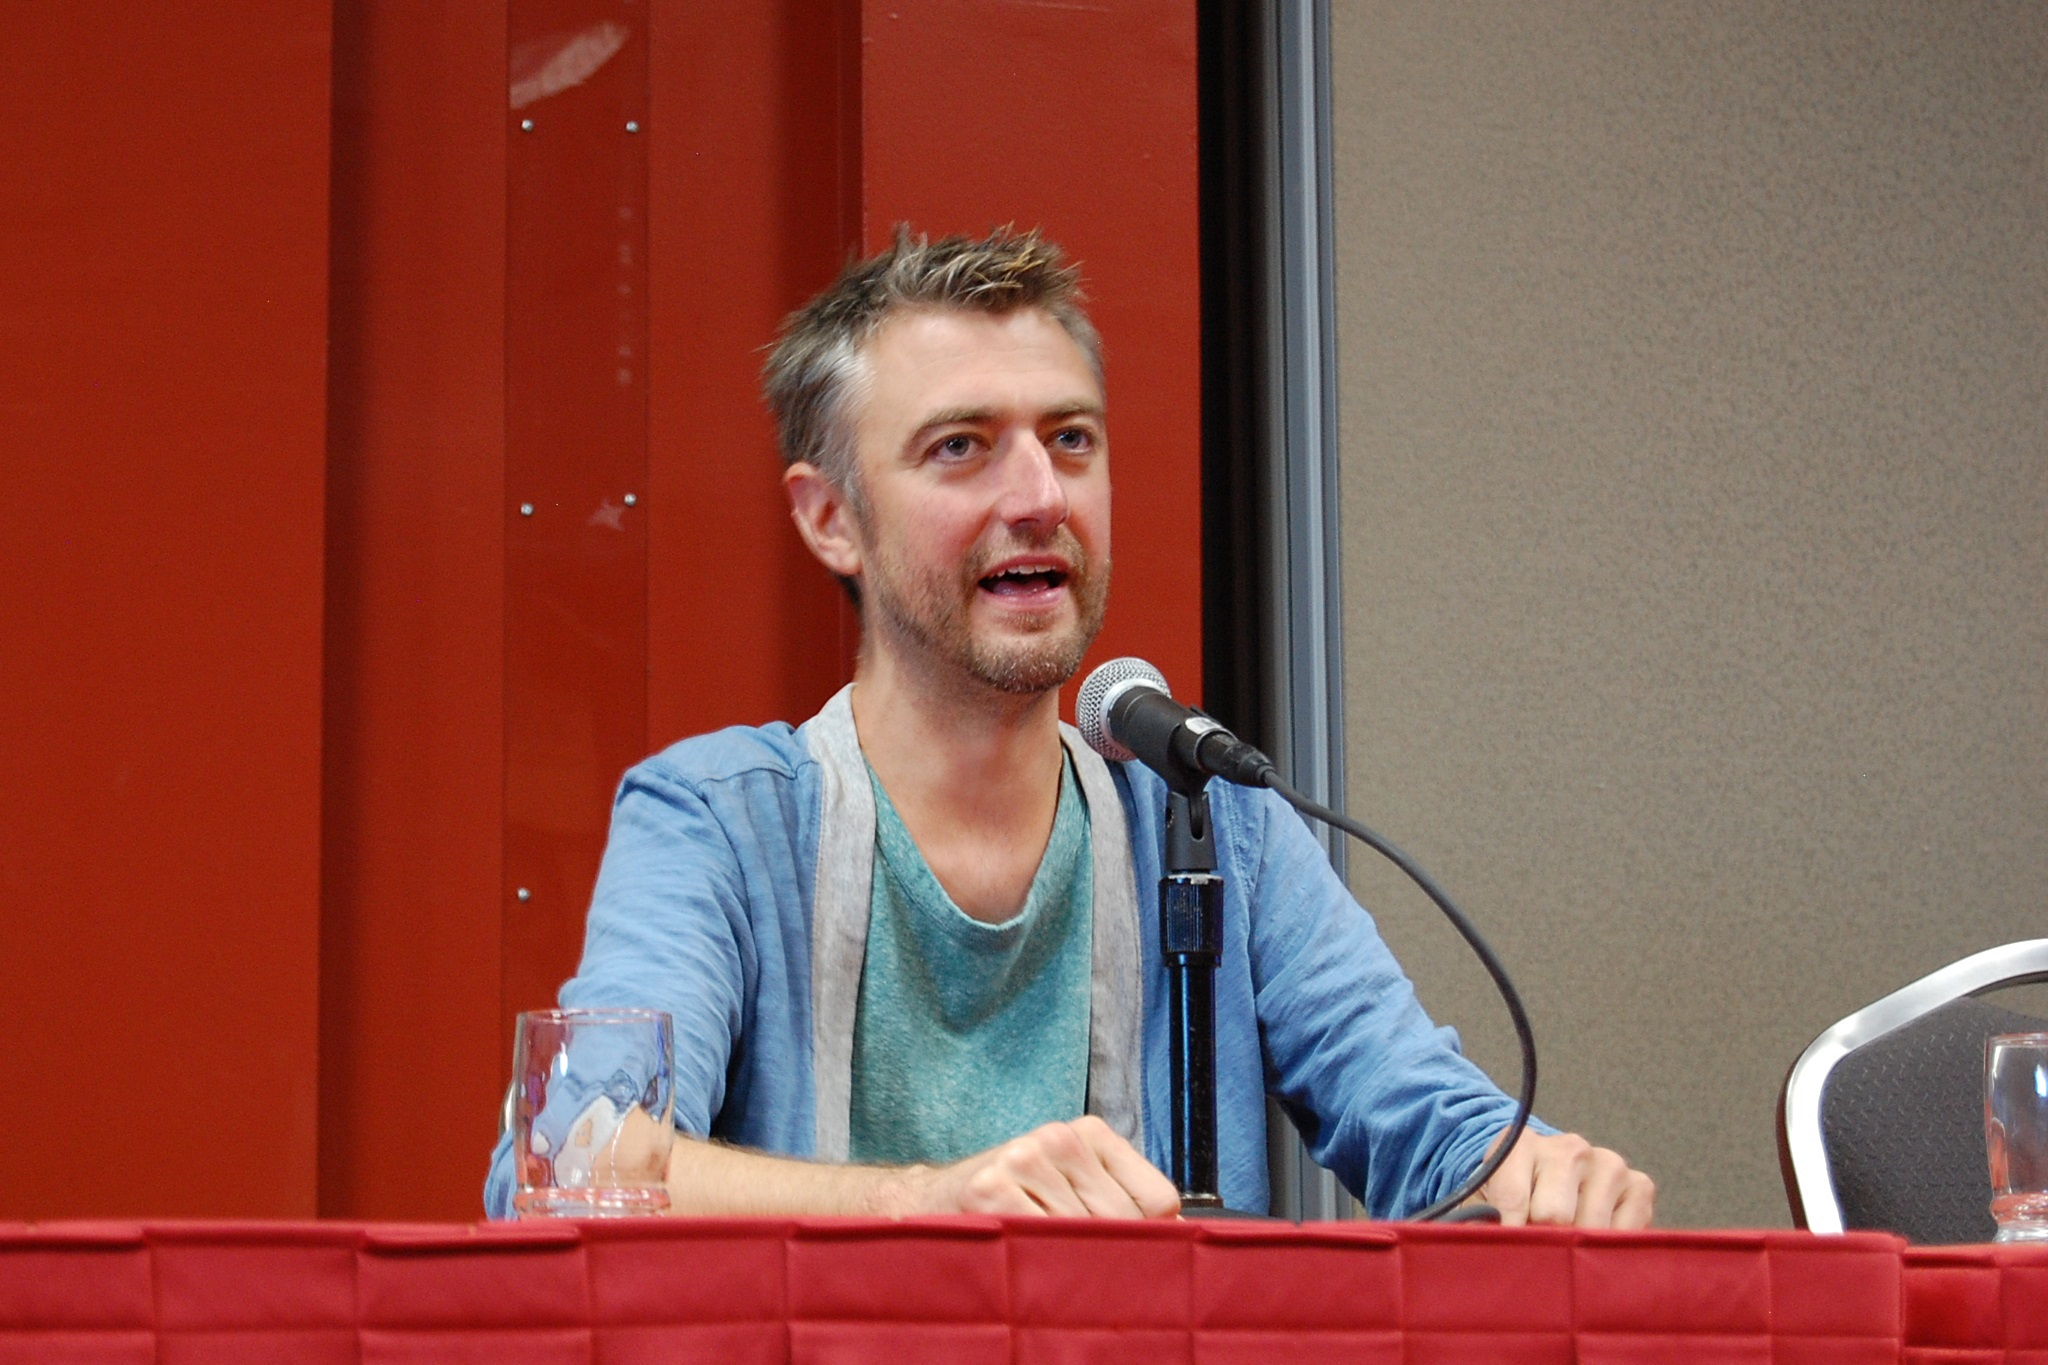 sean gunn wifesean gunn avengers, sean gunn height, sean gunn instagram, sean gunn, sean gunn imdb, sean gunn guardians of the galaxy, sean gunn surgery, sean gunn body, sean gunn guardians, sean gunn married, sean gunn net worth, sean gunn wife, sean gunn rocket raccoon, sean gunn gay, sean gunn twitter, sean gunn pectus excavatum, sean gunn angel, sean gunn medical, sean gunn pearl harbor